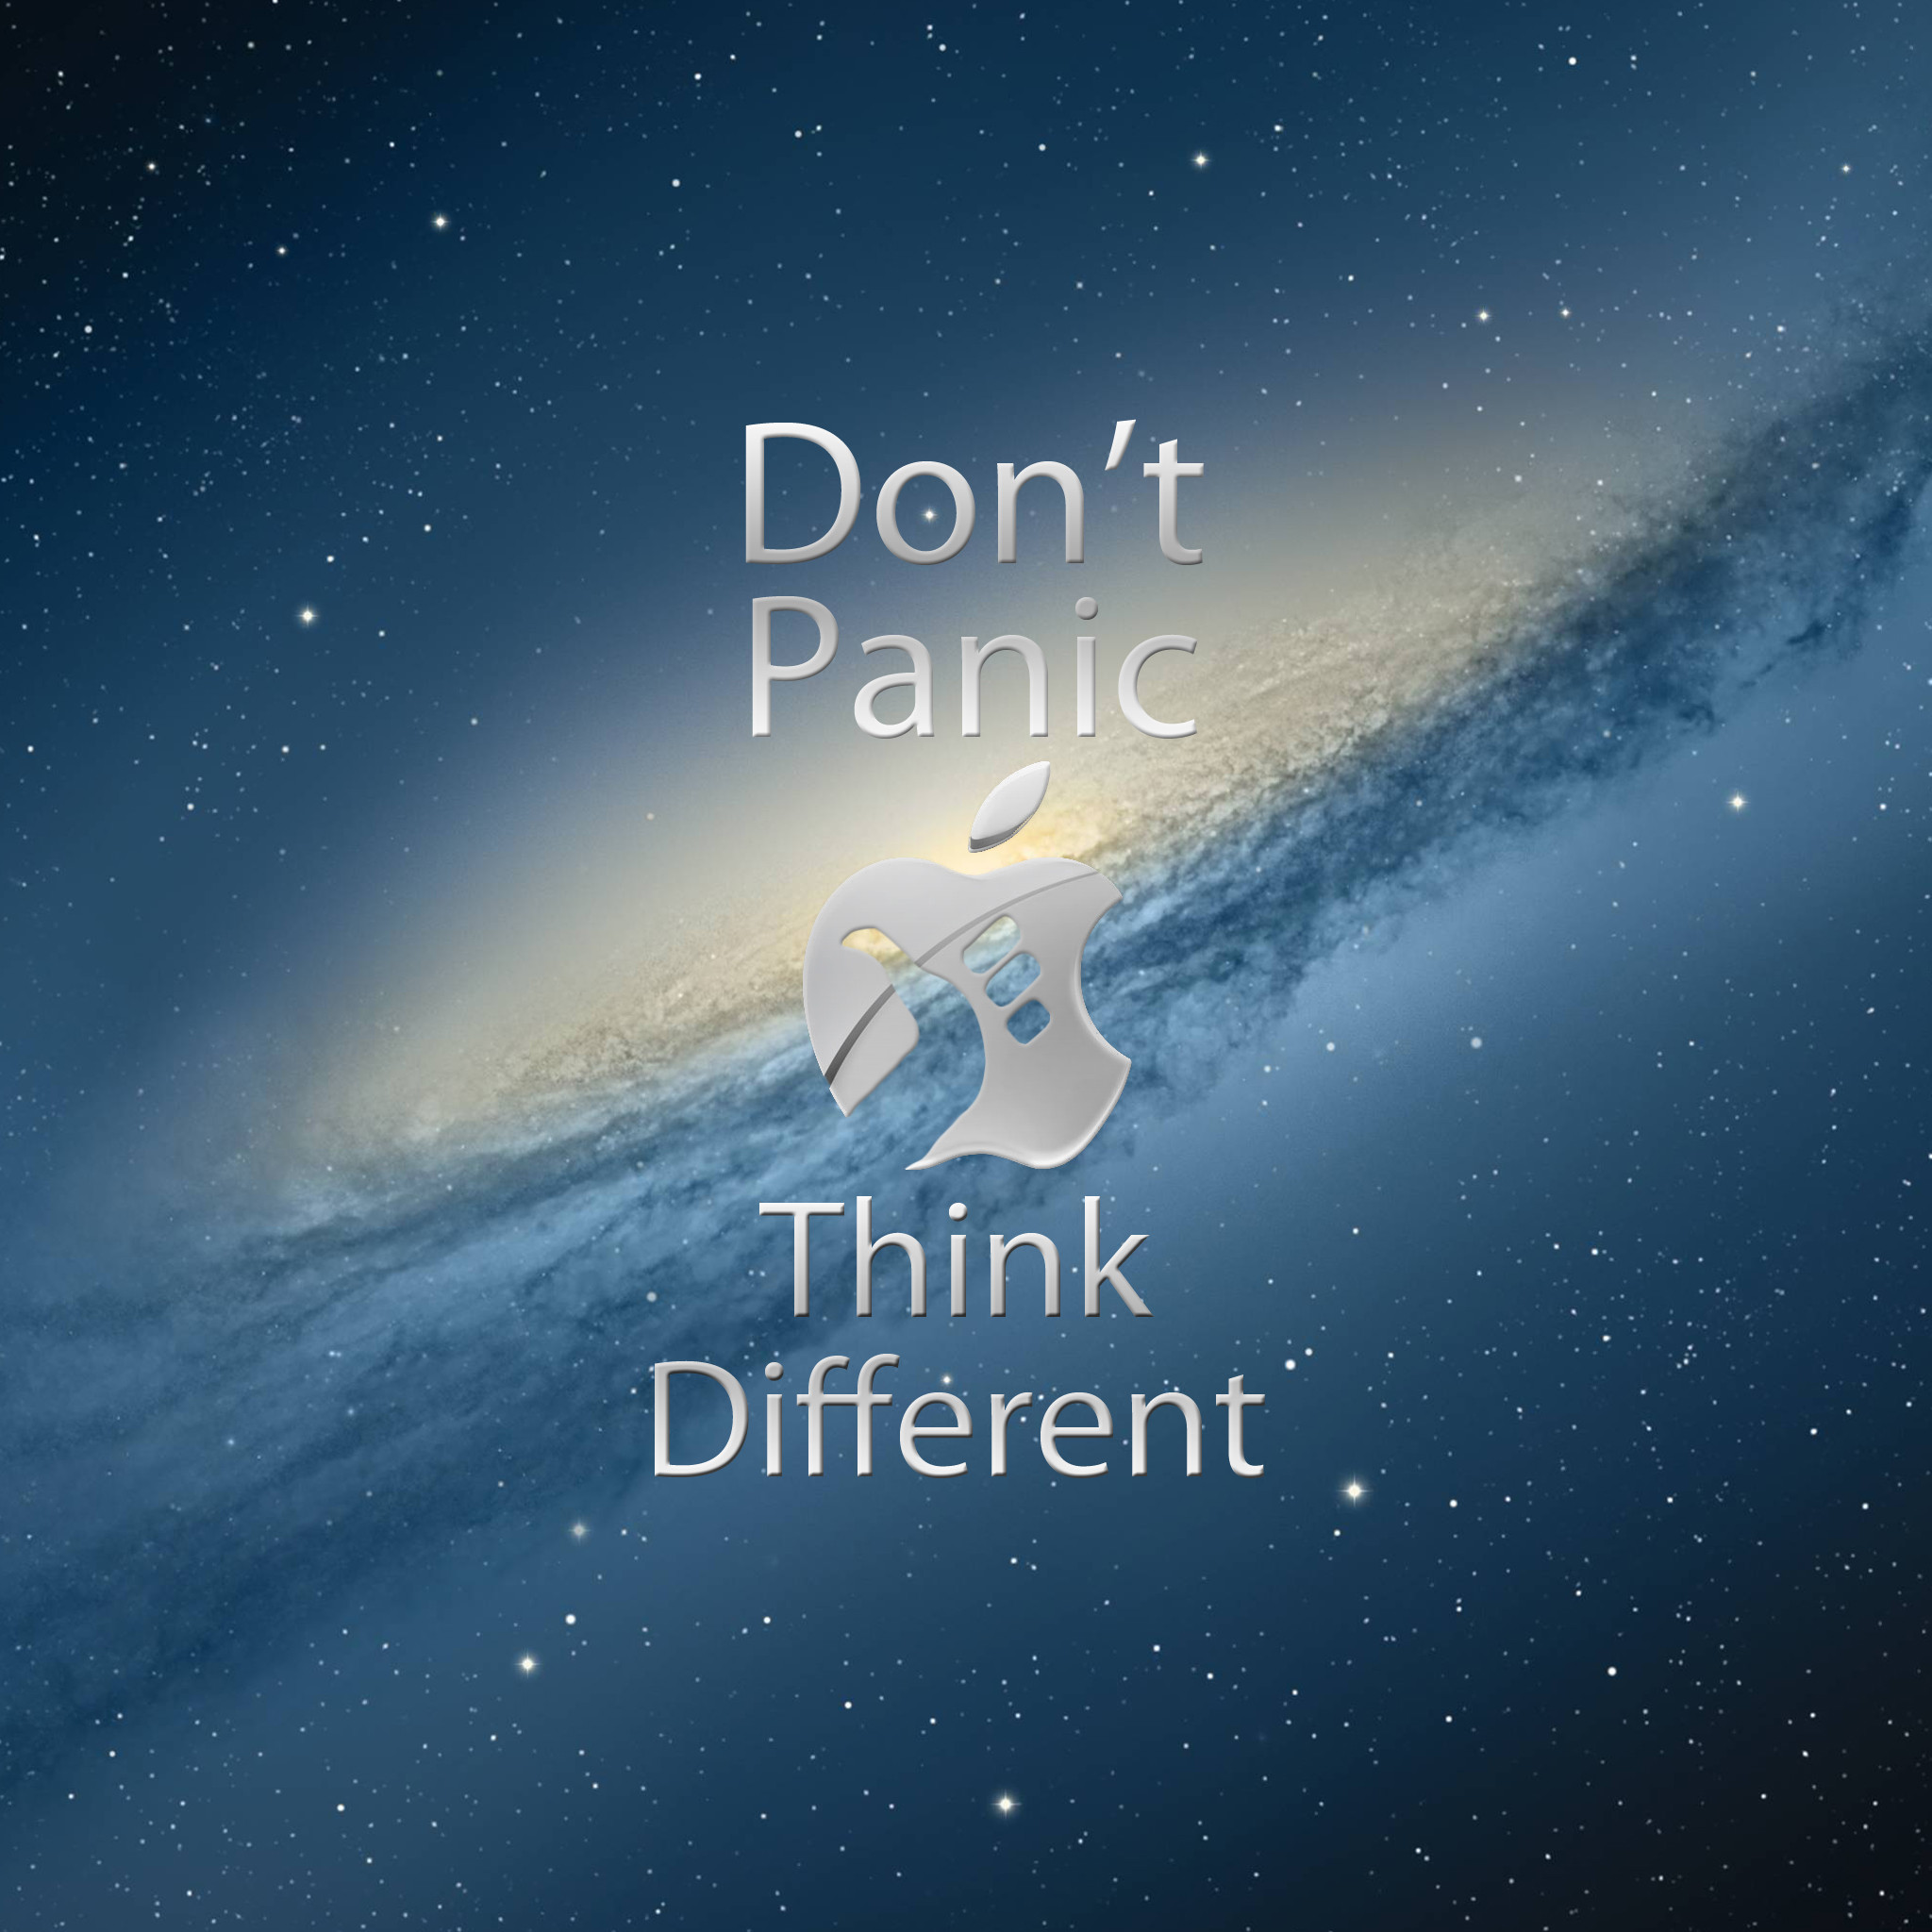 think different wallpapers (73+ images)